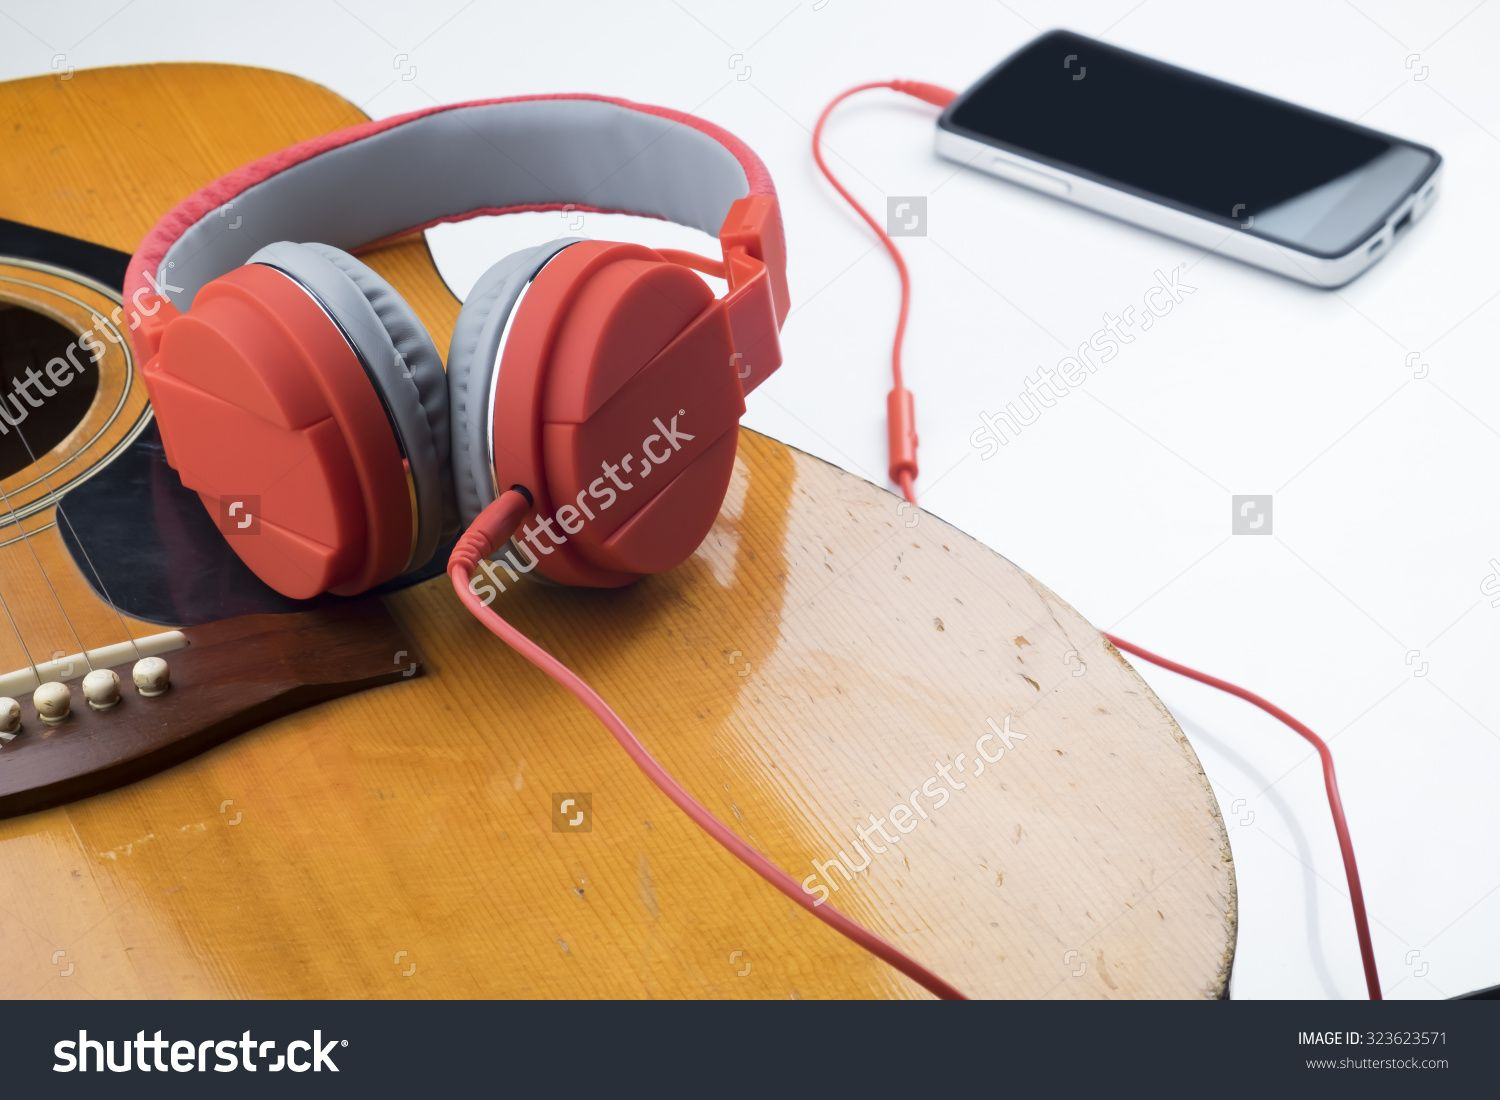 Relaxing Time Red Earphone On Guitar Connect With Smart Phone Over White Background Stock Photo 323623571 Shutterstock